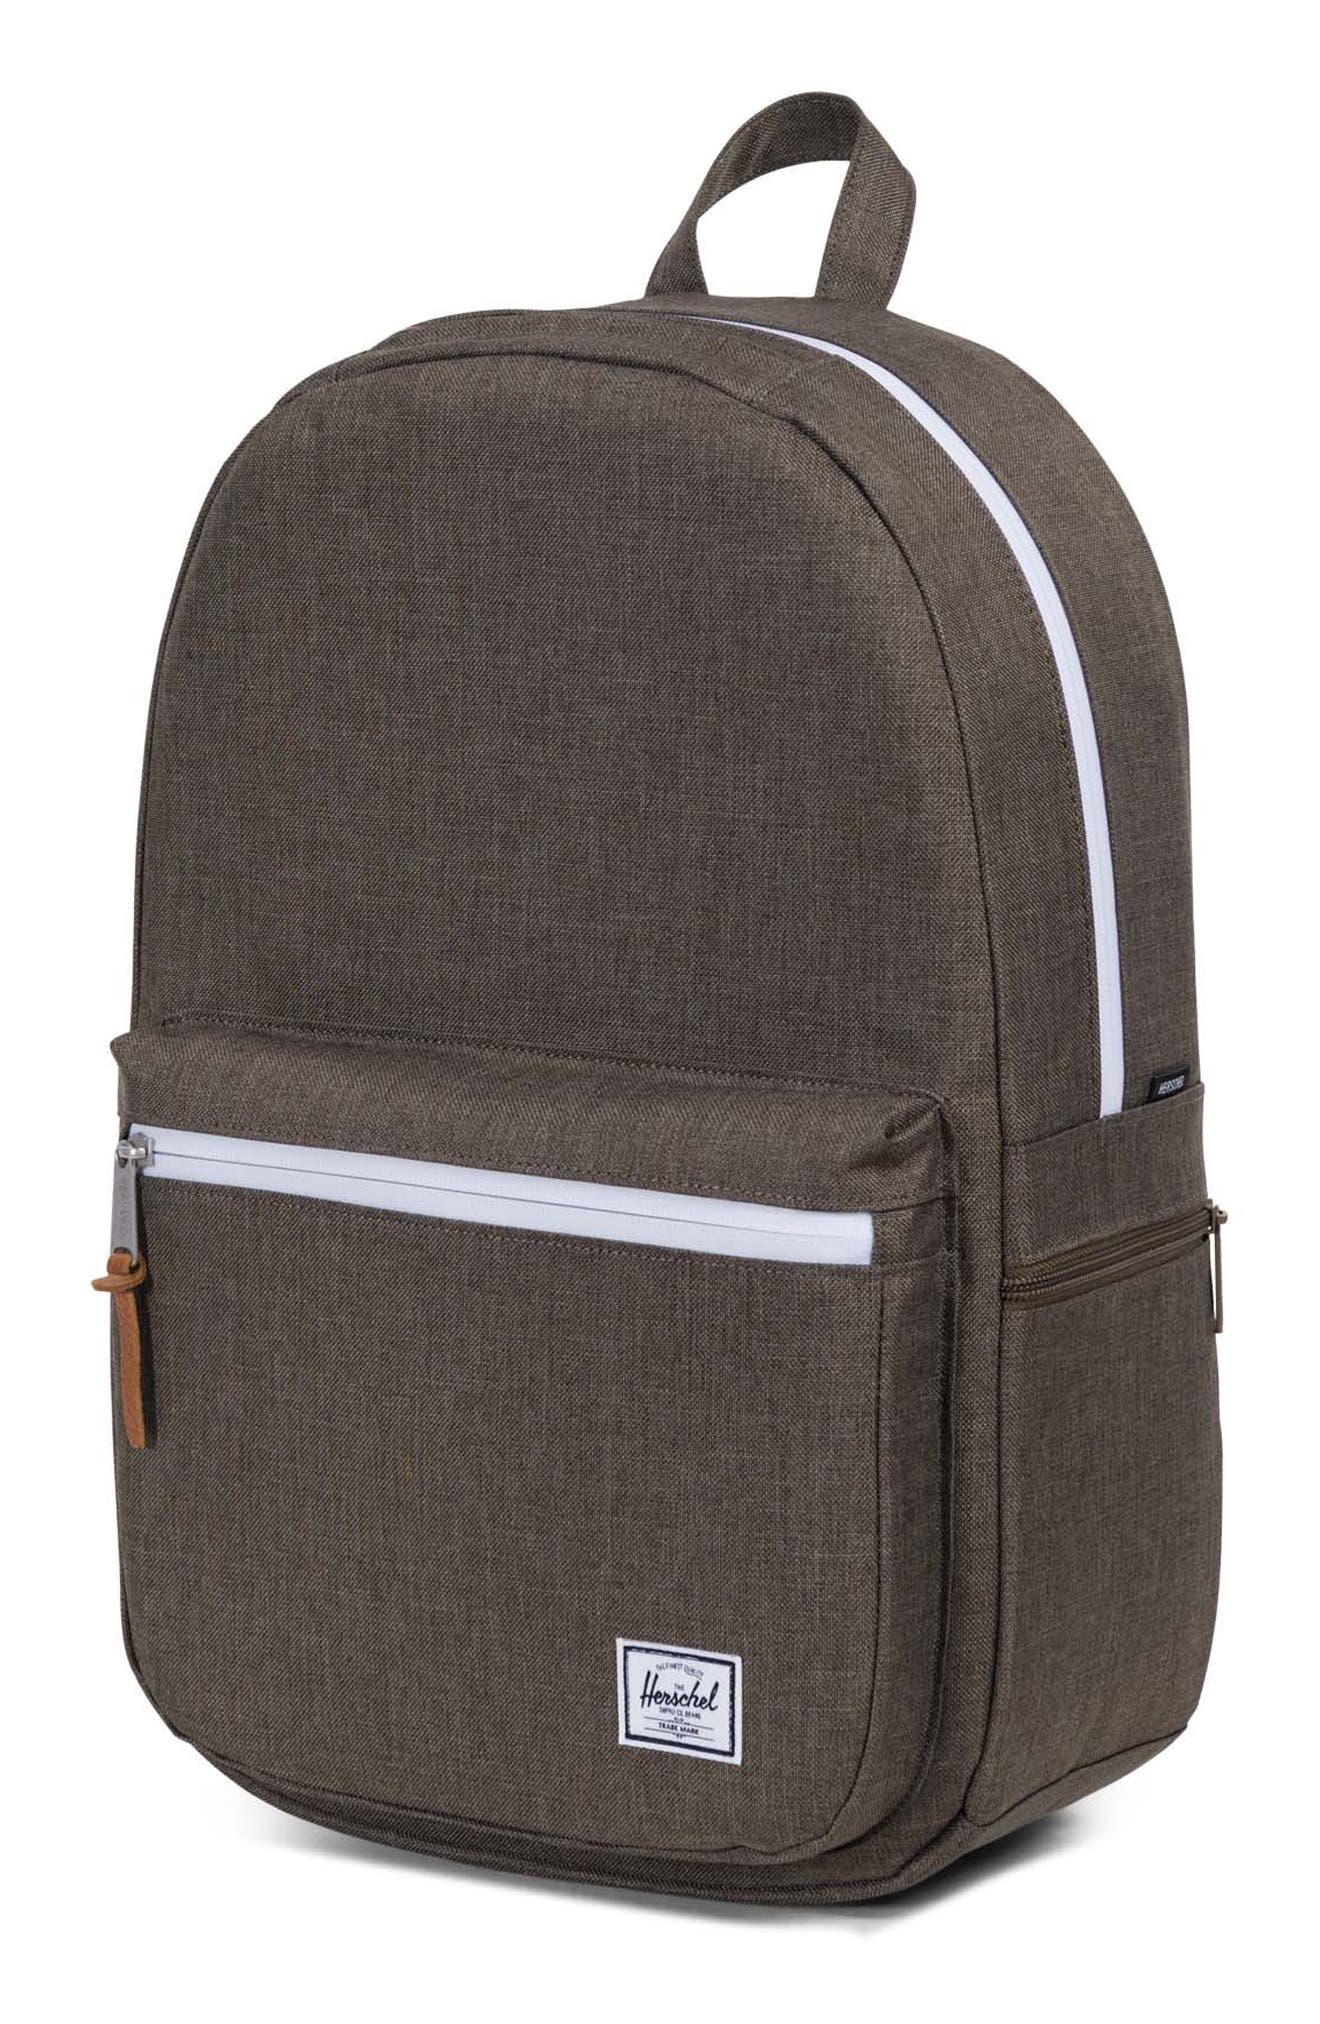 Harrison Backpack,                             Alternate thumbnail 4, color,                             218